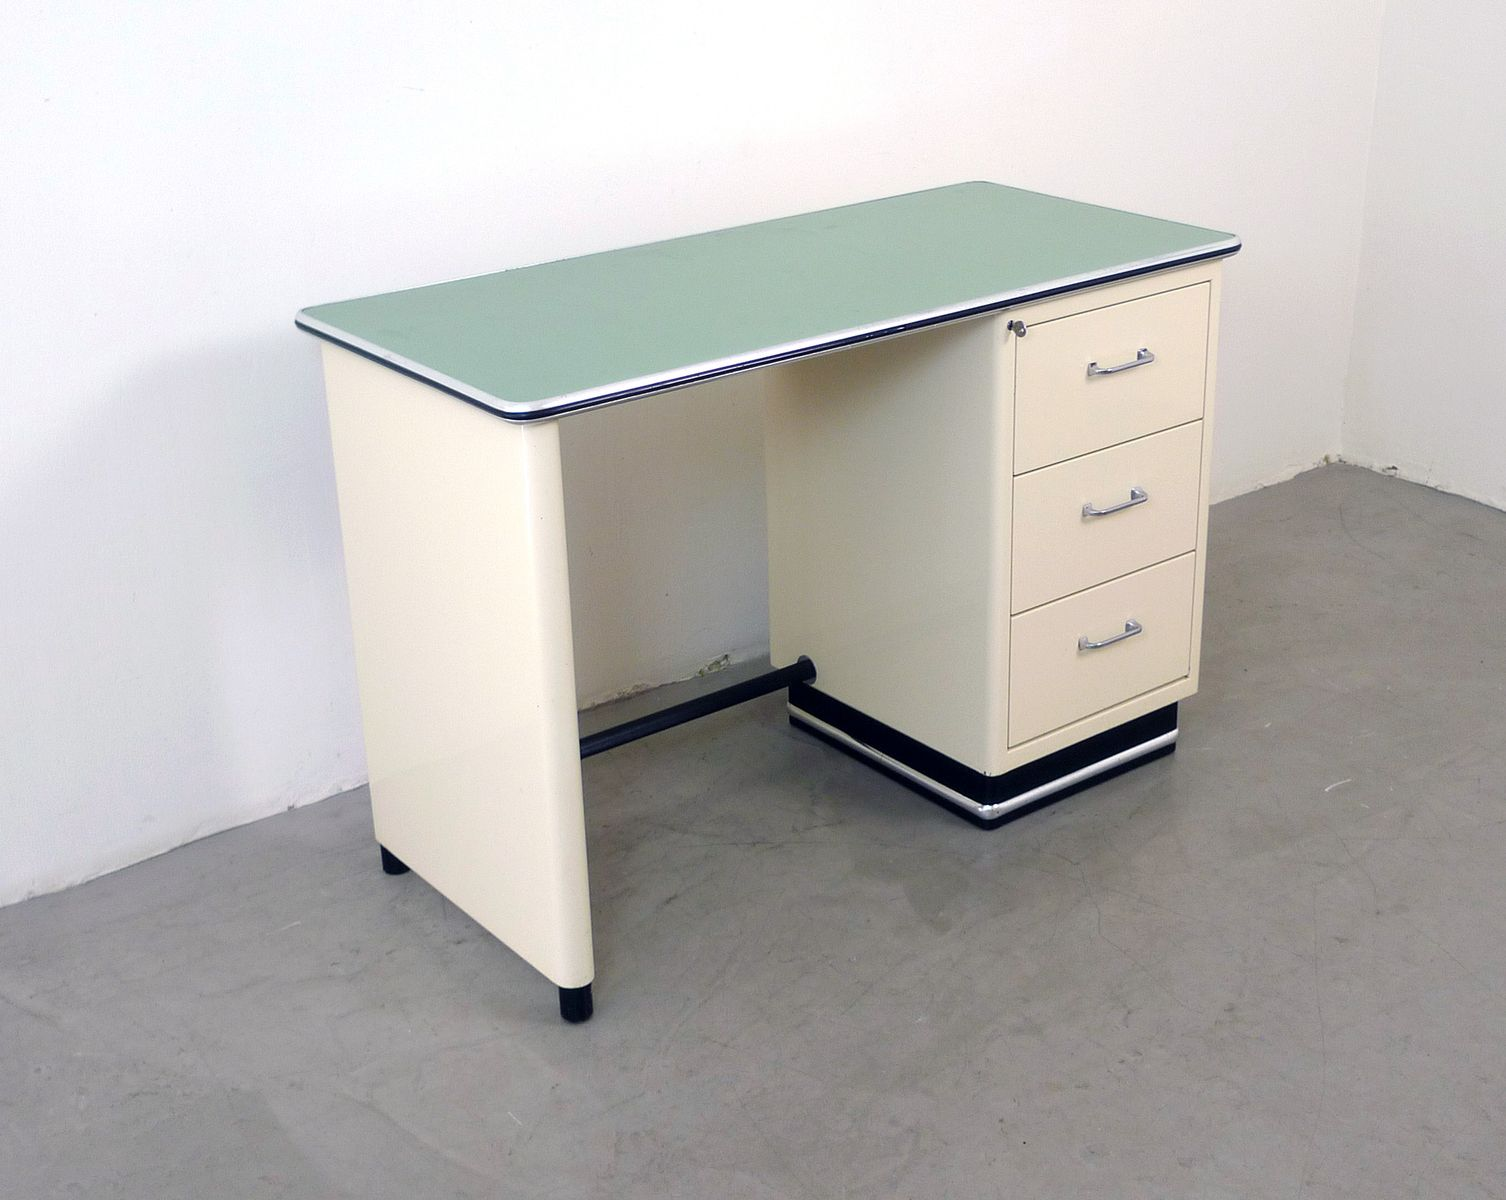 German Beige Metal Desk with Mint Green Plate from Baisch